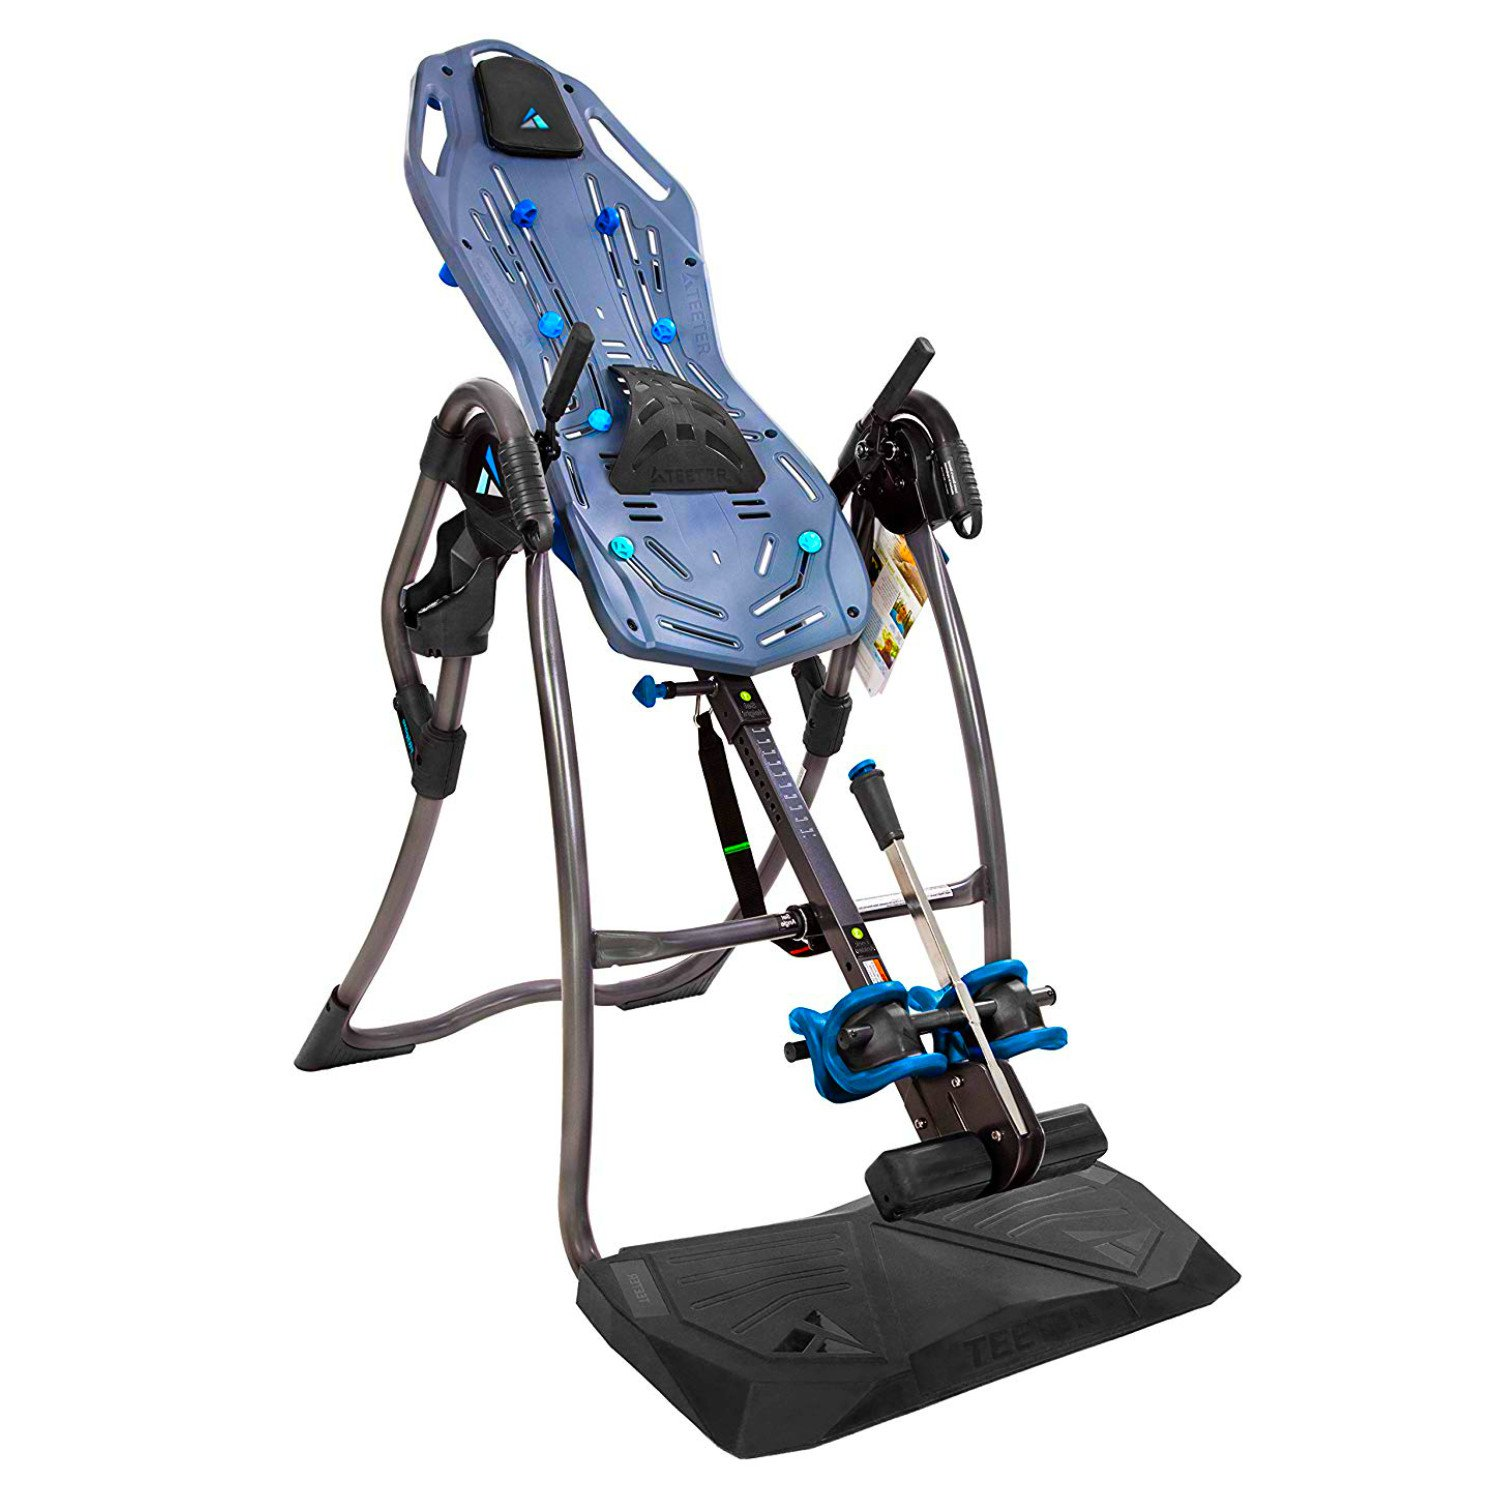 New Teeter Fitspine Lx9 Inversion Table Body Massage Shop